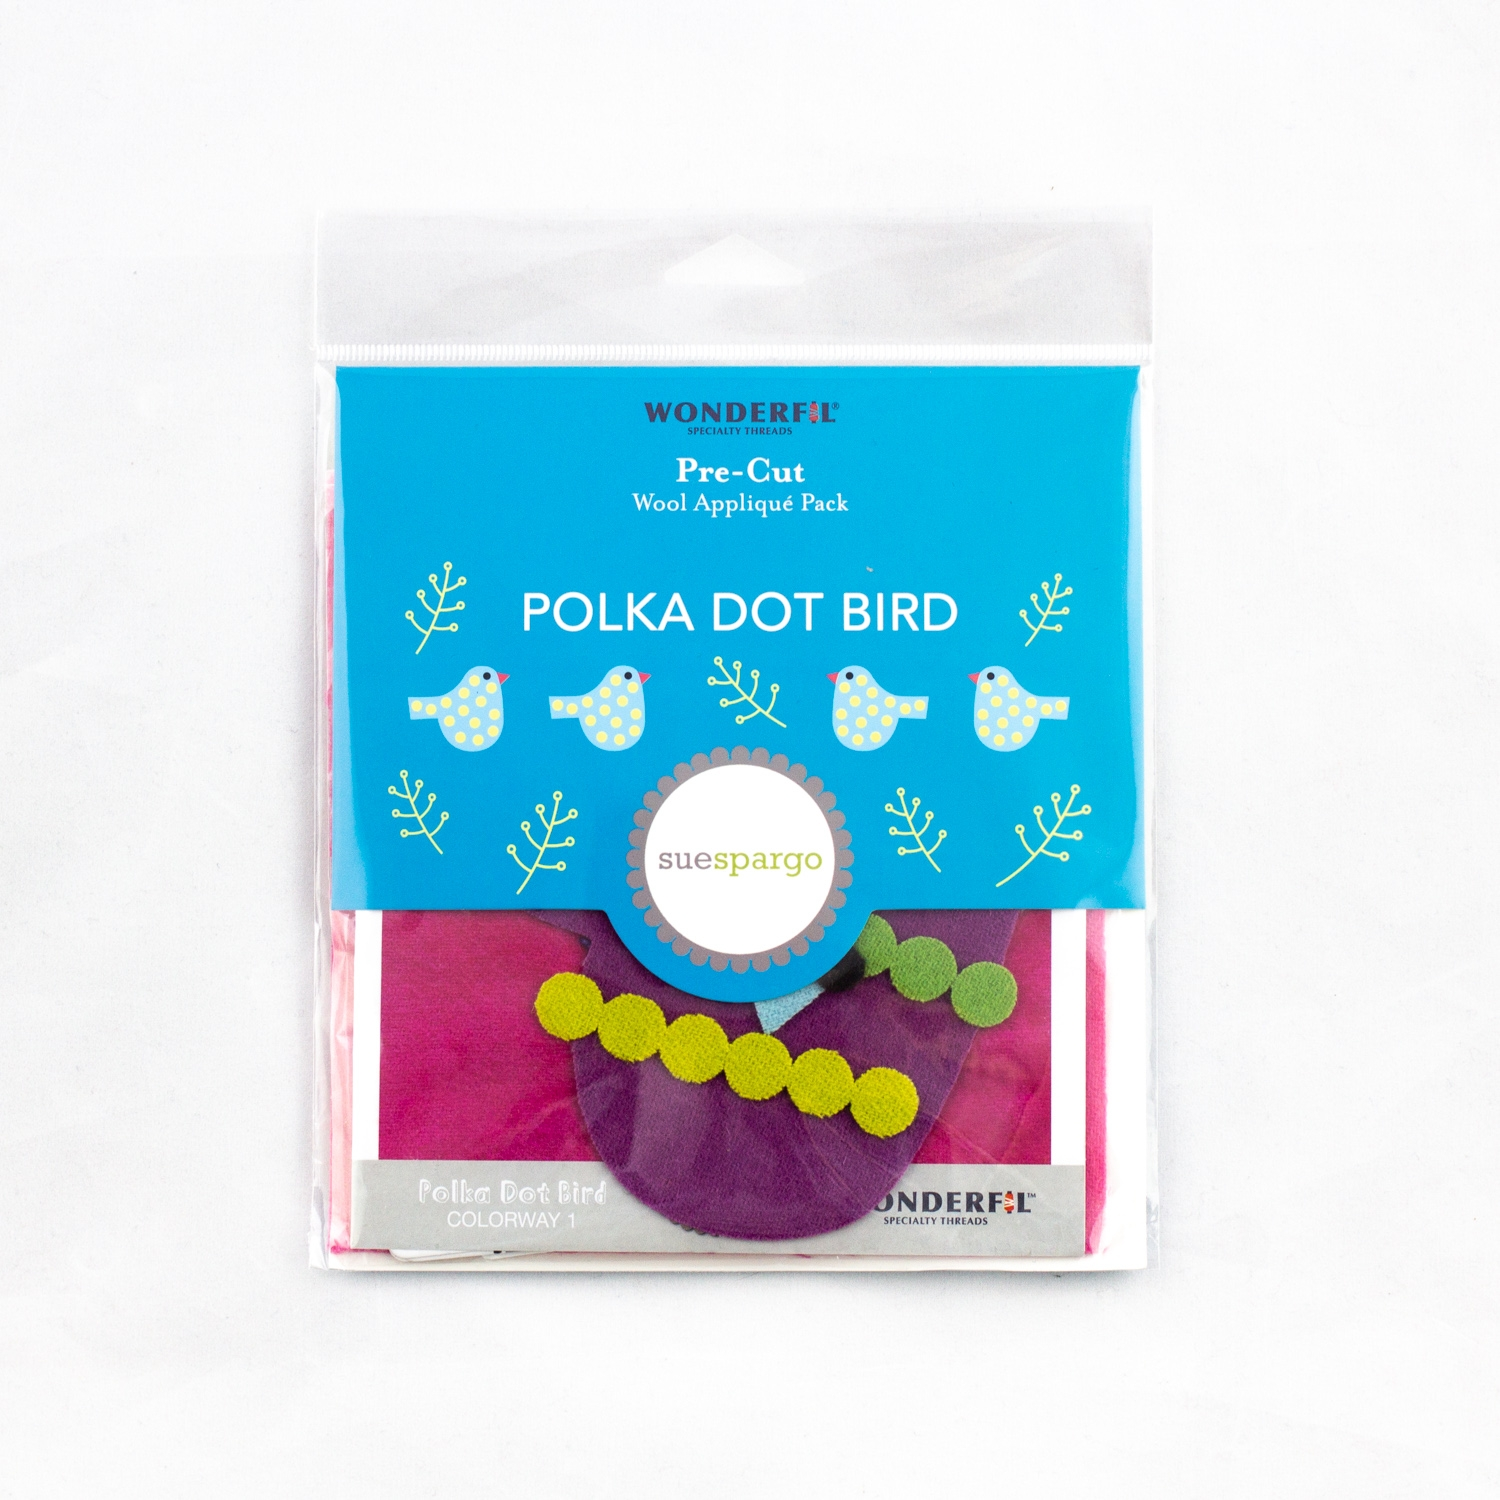 Sue Spargo pre-cut wool pack - polka dot bird - colorway 1